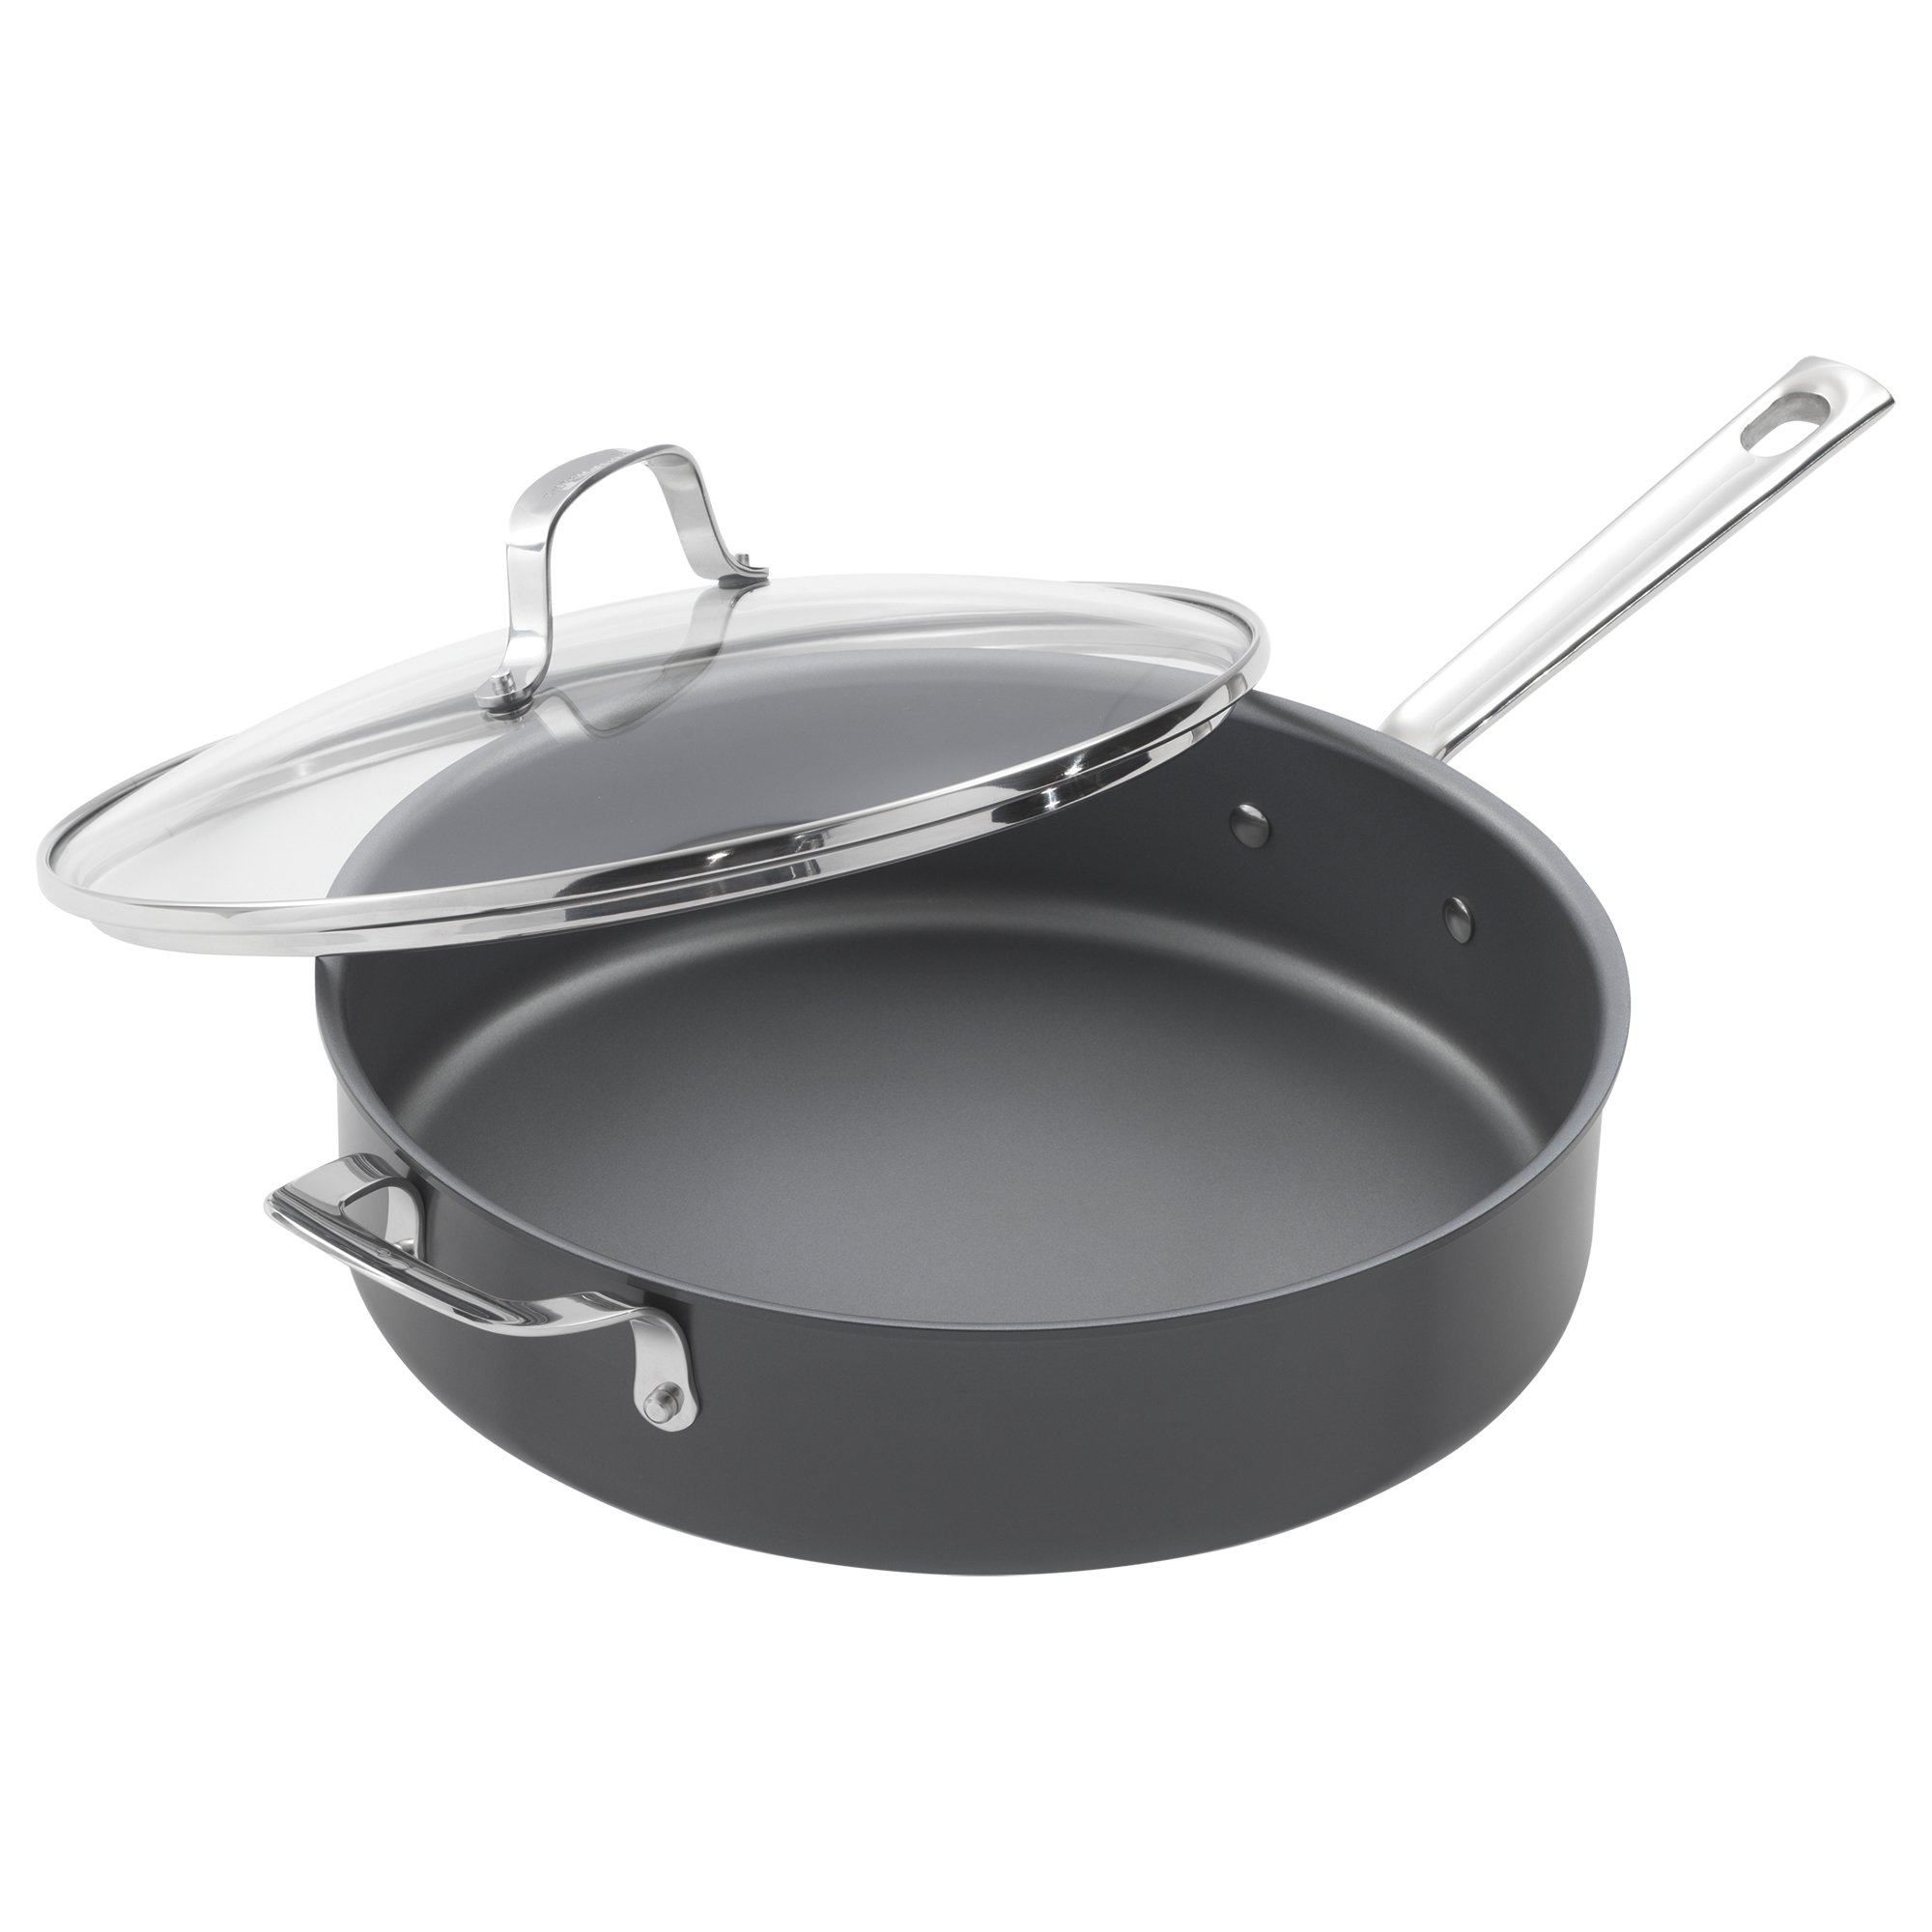 Emeril Lagasse 62928 Dishwasher safe Nonstick Hard Anodized Covered Deep Saute Pan, 5-Quart ,Gray